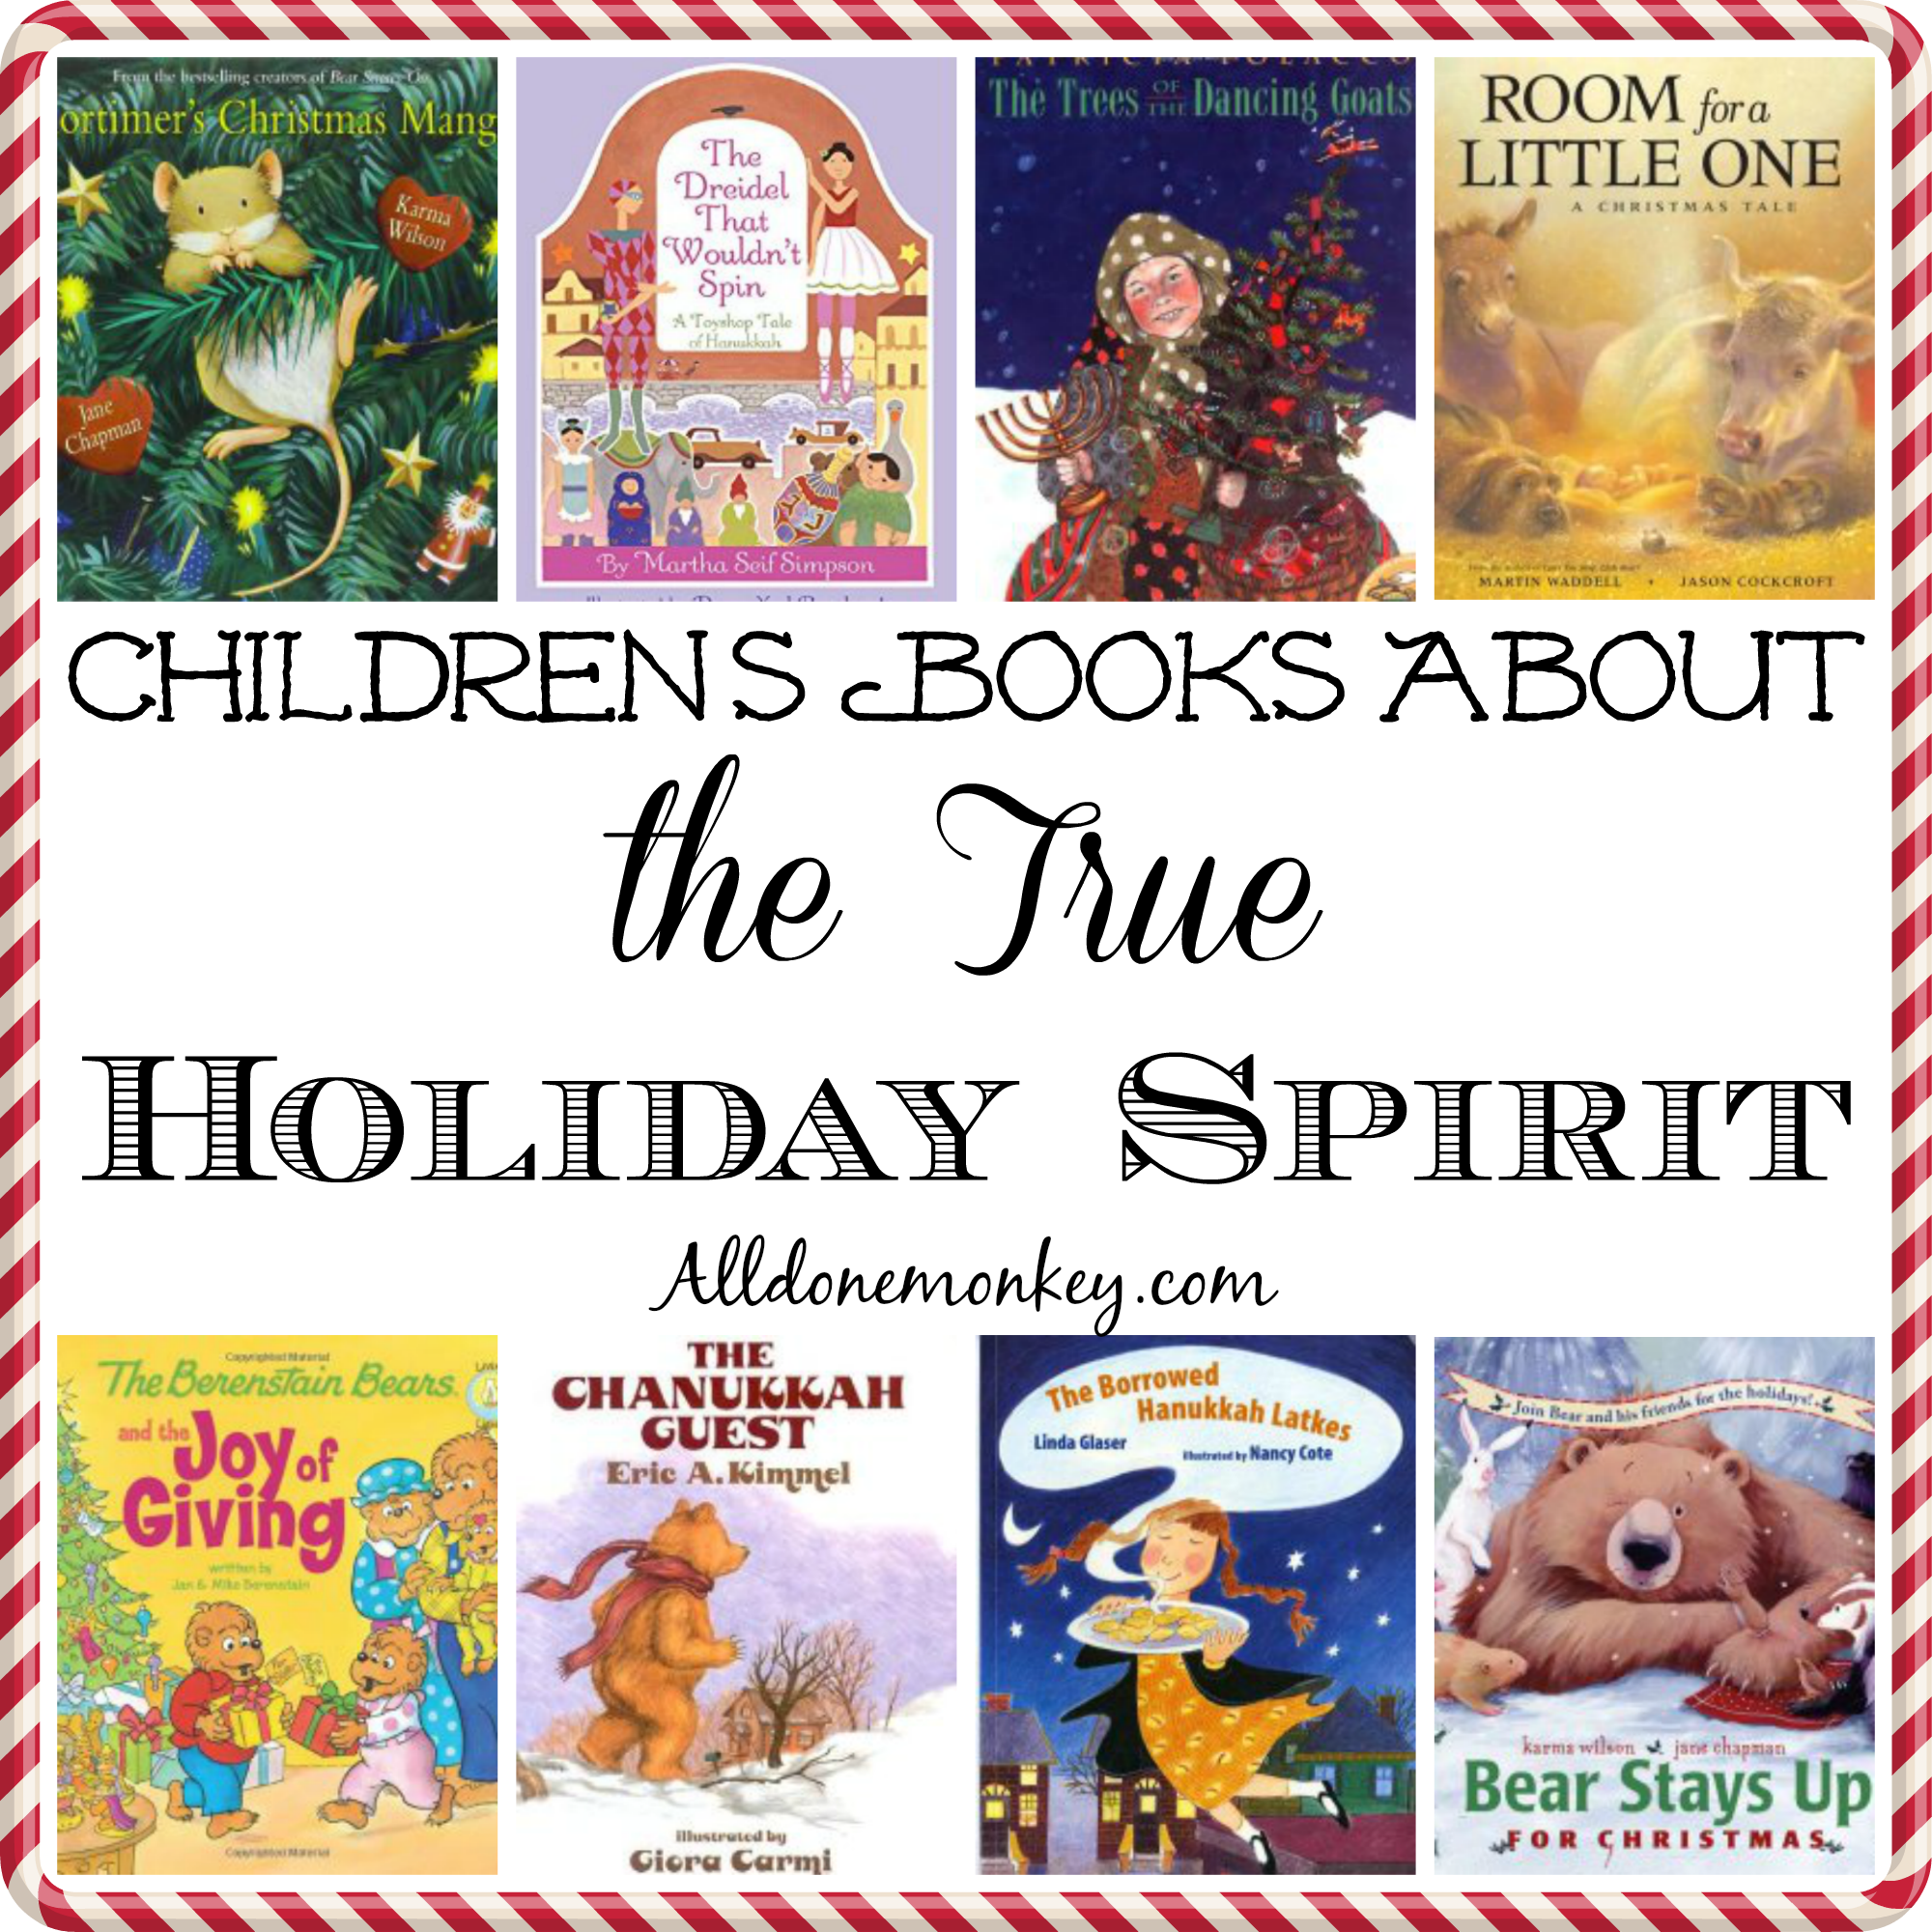 Childrens Books About The True Holiday Spirit